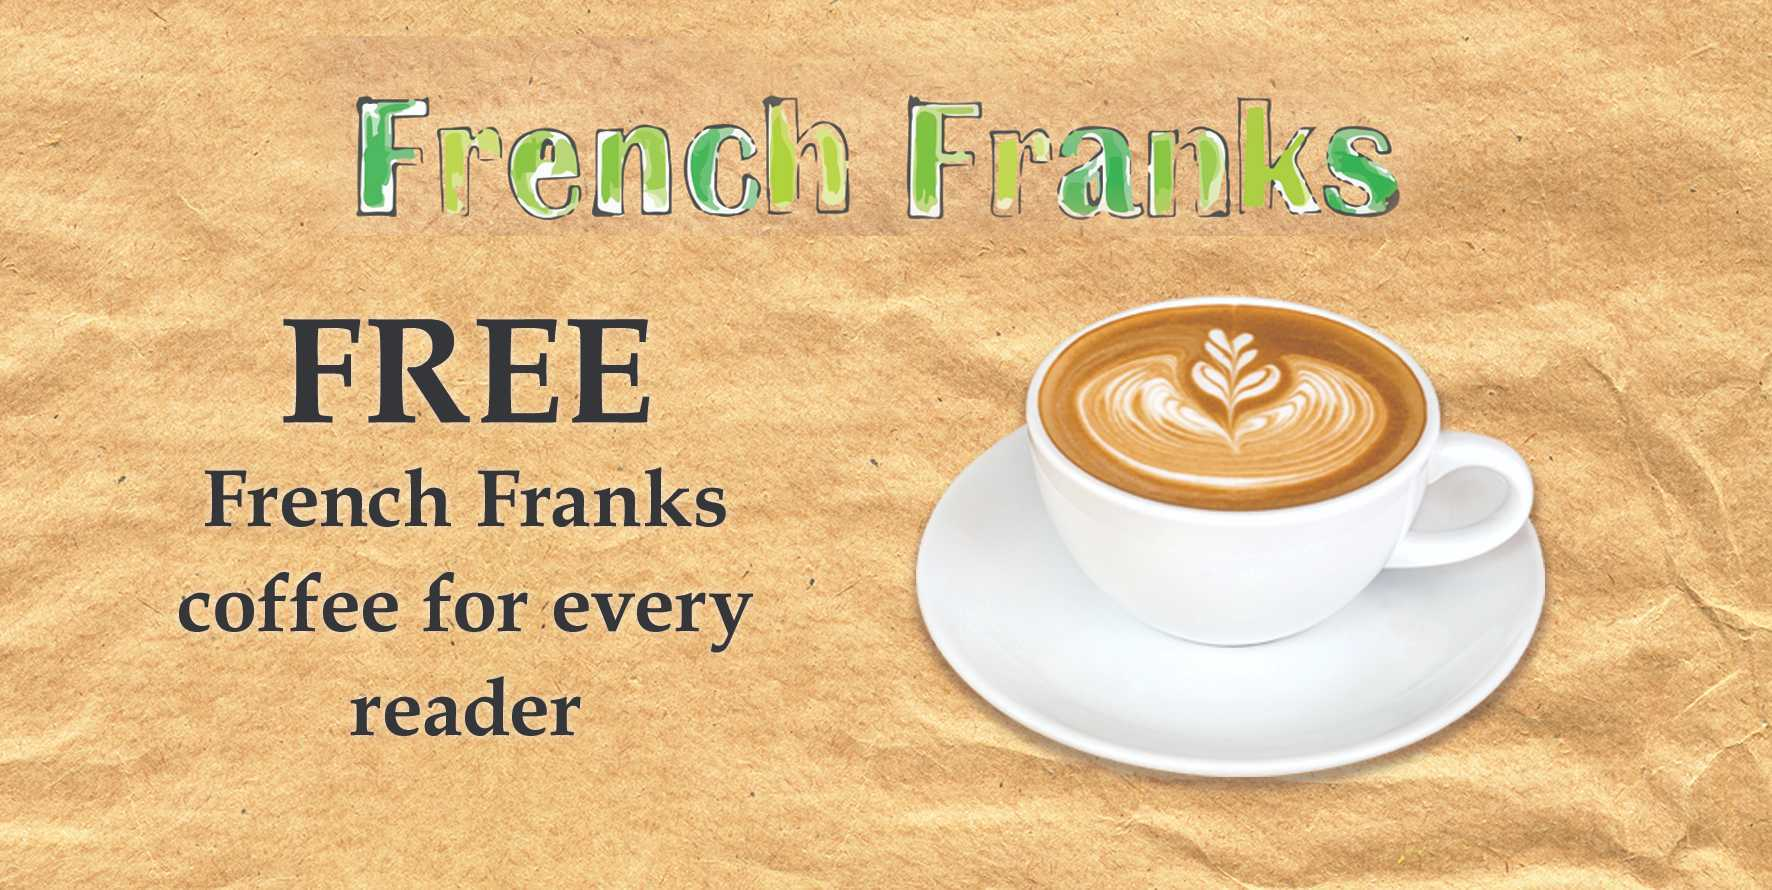 Free French Franks hot drink for County Press readers — exclusive voucher in todays paper